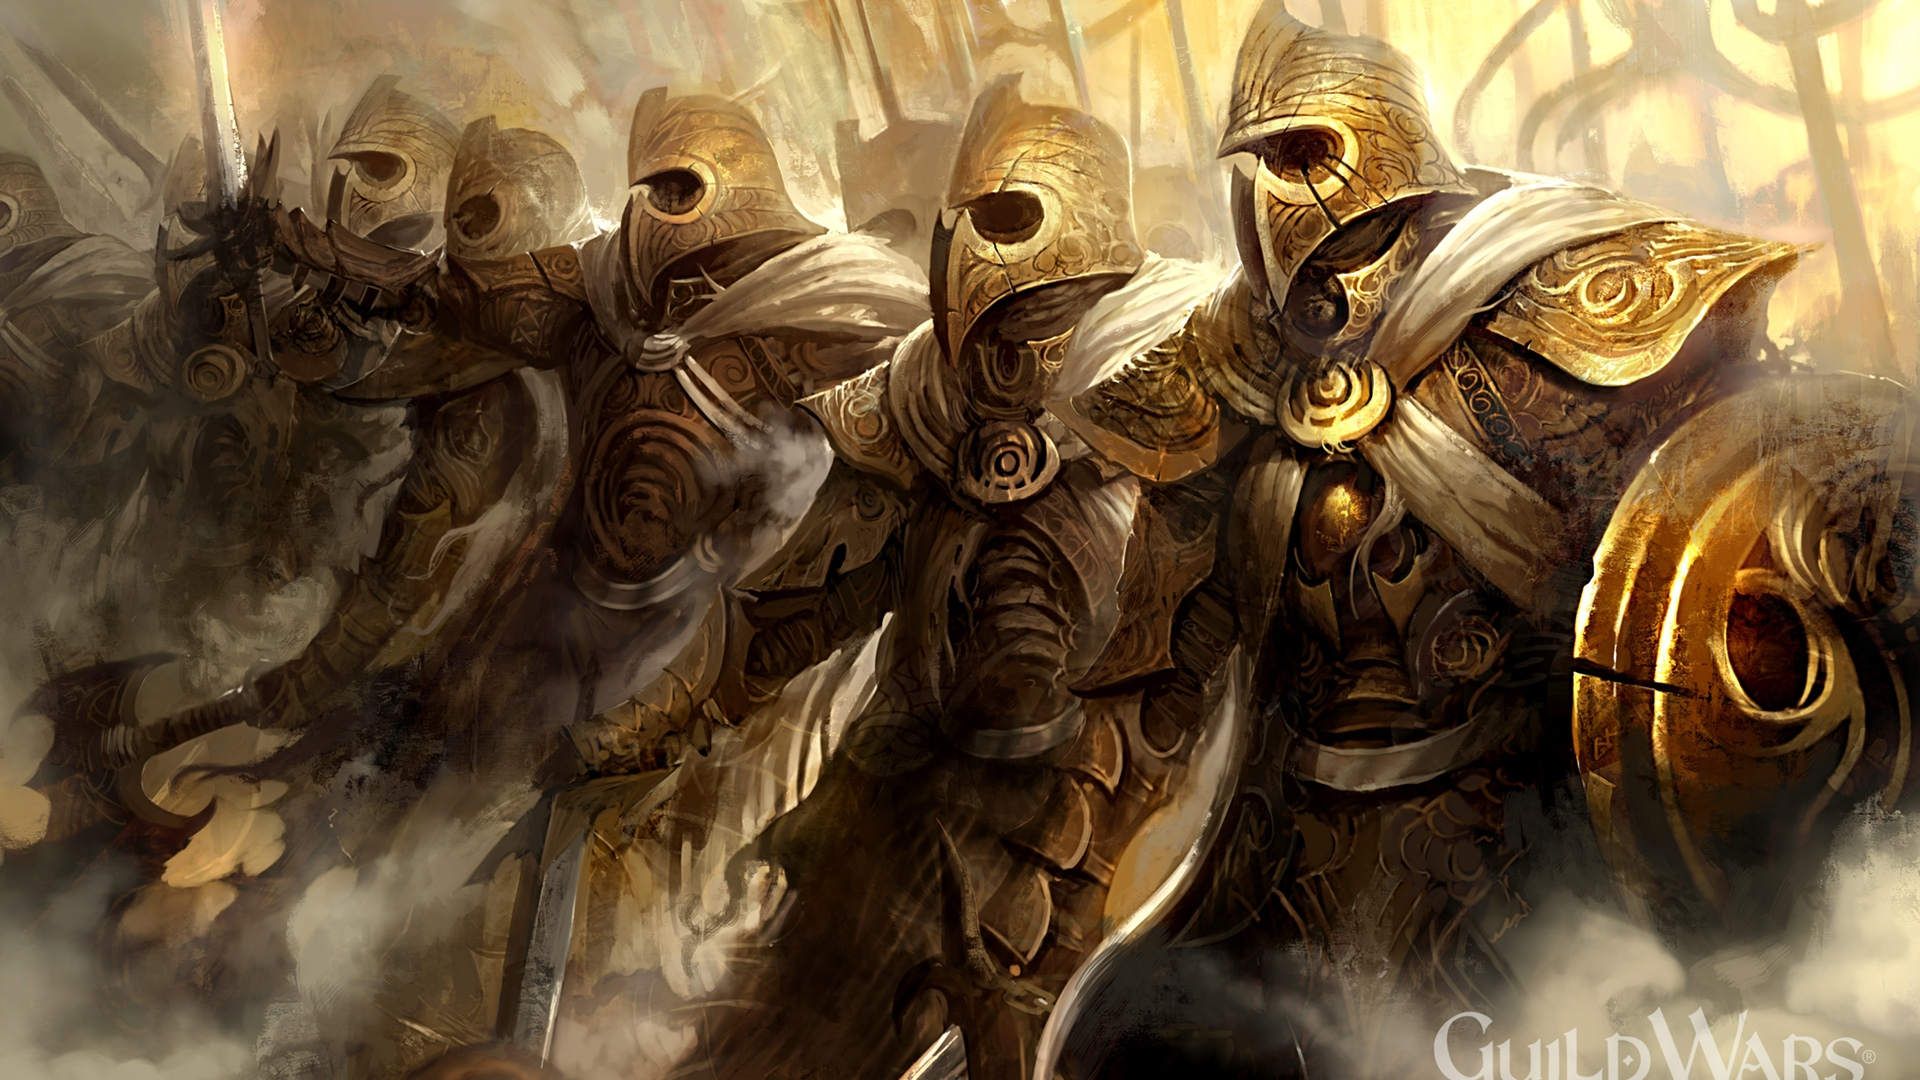 Fabulous-Guild-Wars-Army-Armament-Helmets-«-Kuff-Games-wallpaper-wpc5804678